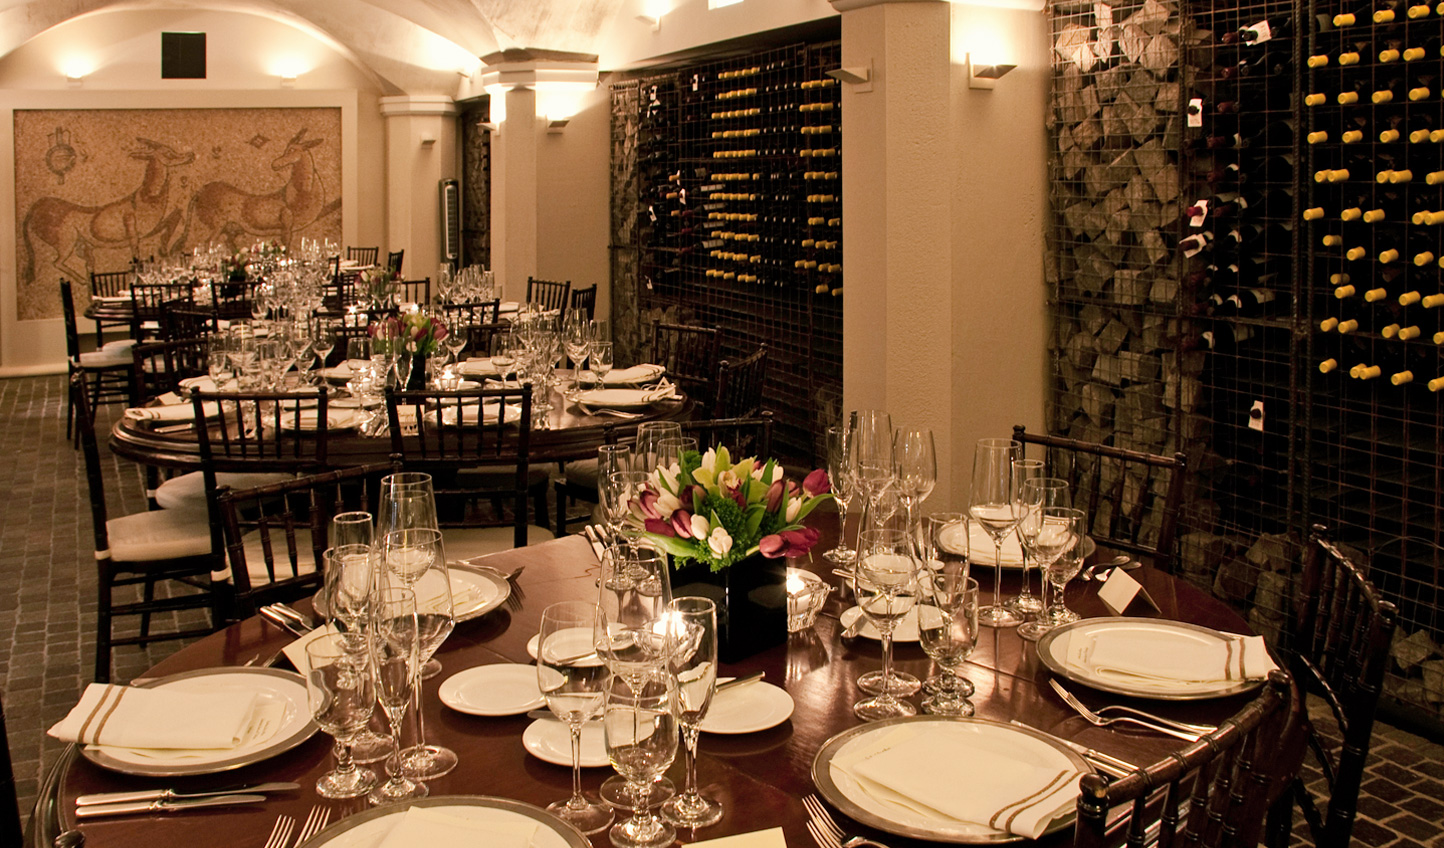 The 'Mooo' restaurant's wine cellar is home to a Roman mosaic and is not to be missed